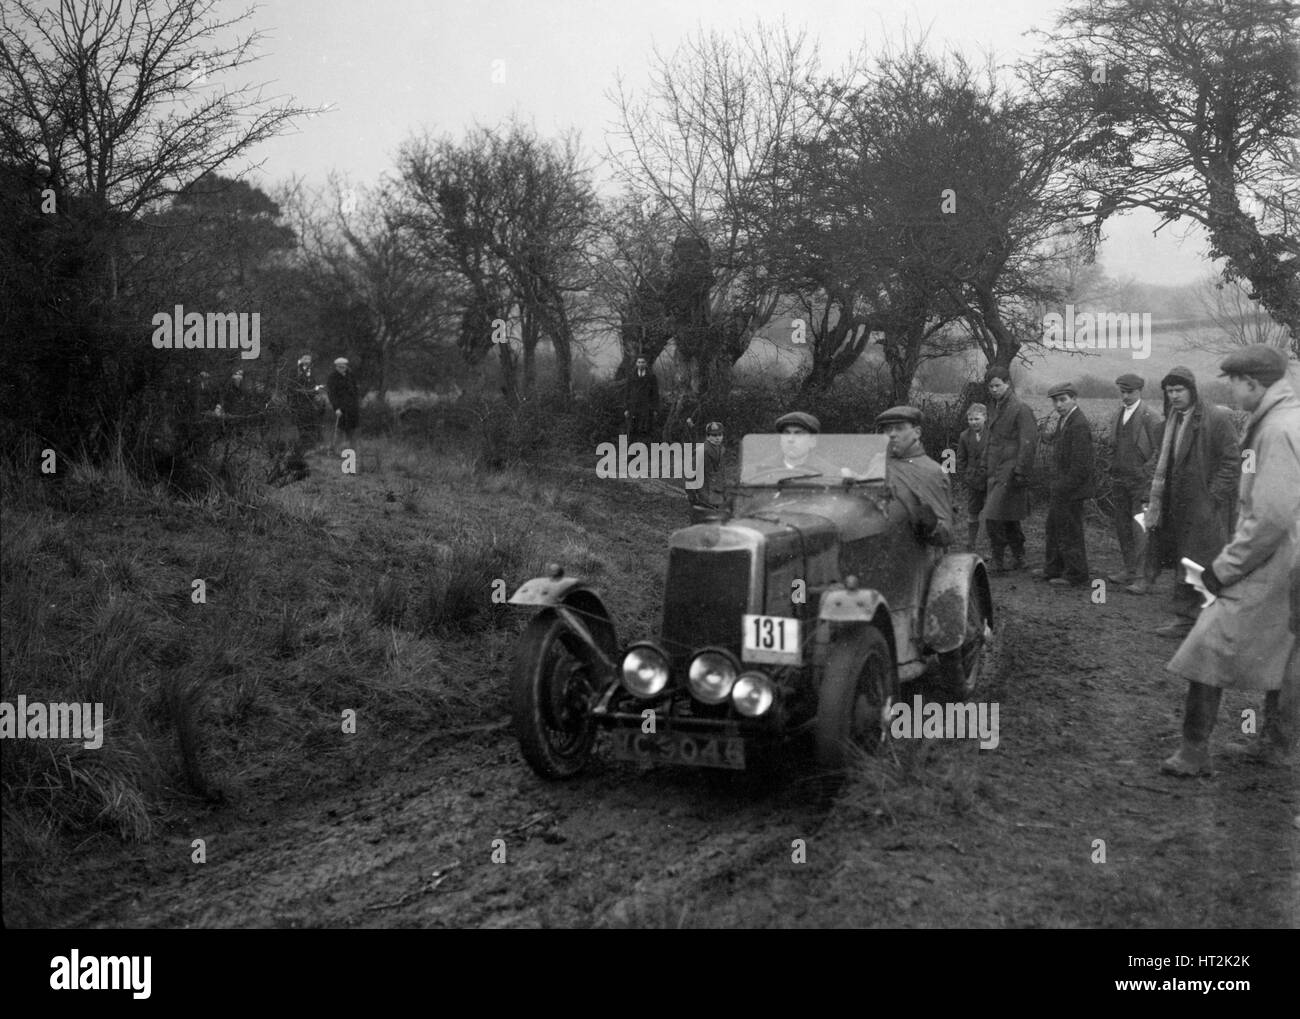 Lea-Francis of CH Wagstaff at the Sunbac Colmore Trial, near Winchcombe, Gloucestershire, 1934. Artist: Bill Brunell. - Stock Image